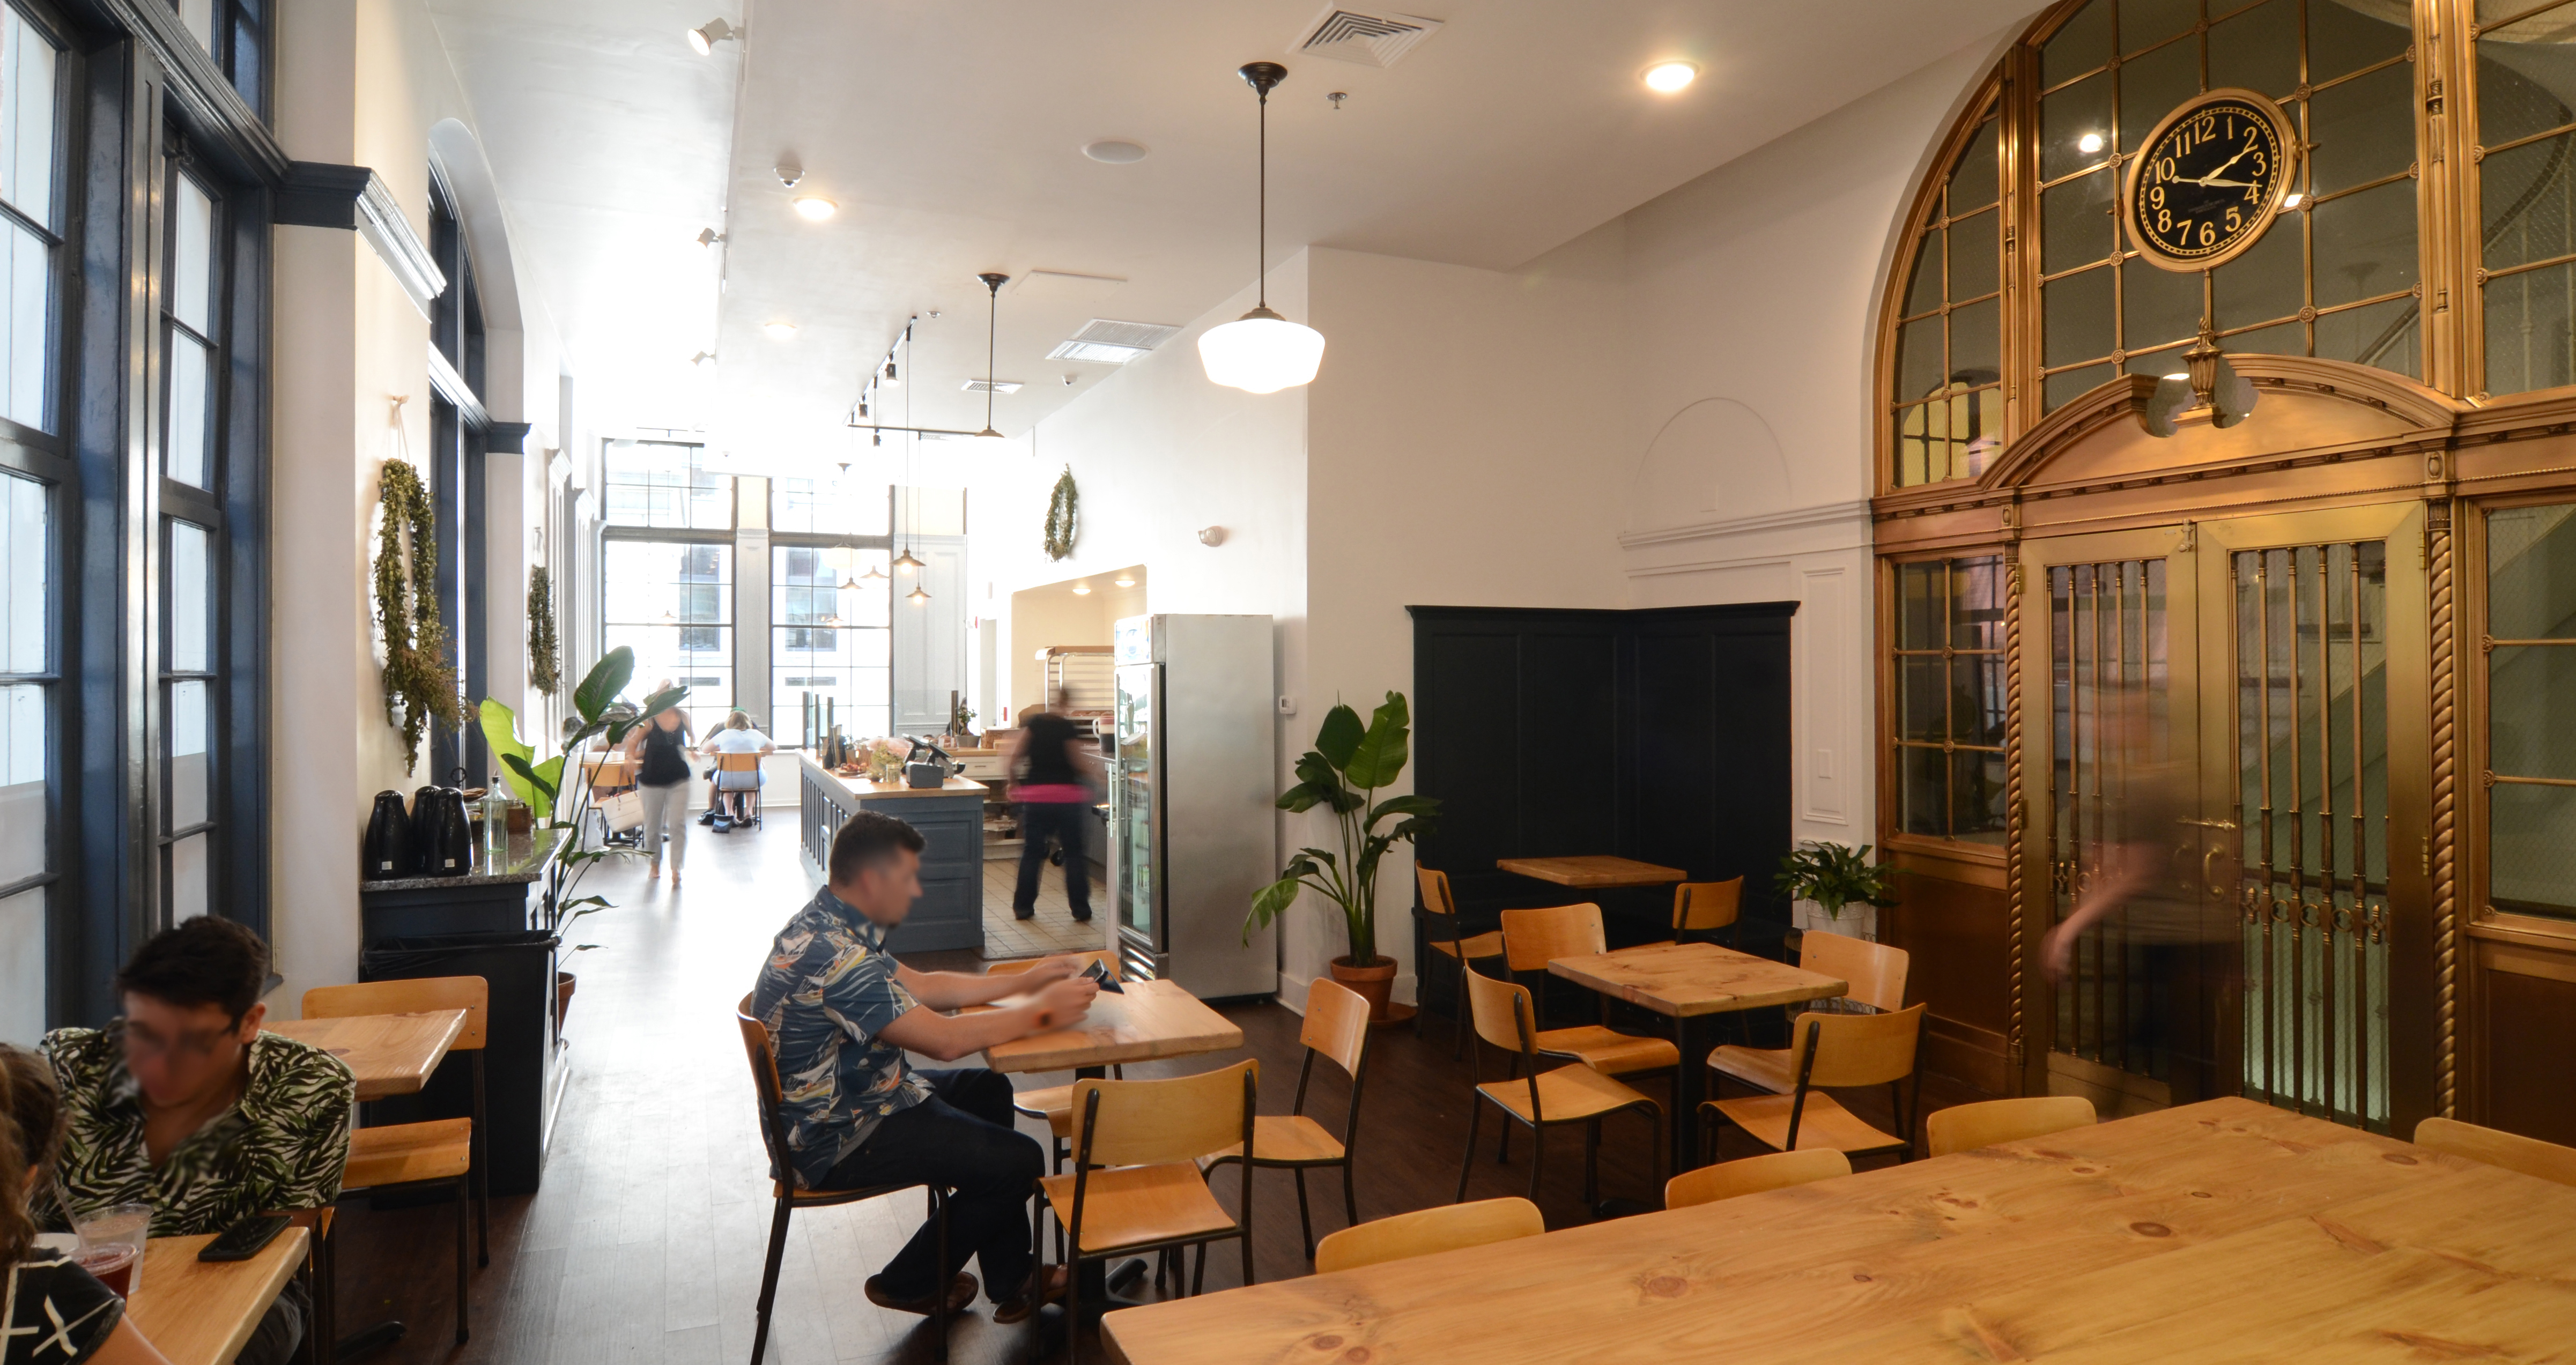 Kite-1420-Custom House Street-Providence-Knead-Cafe